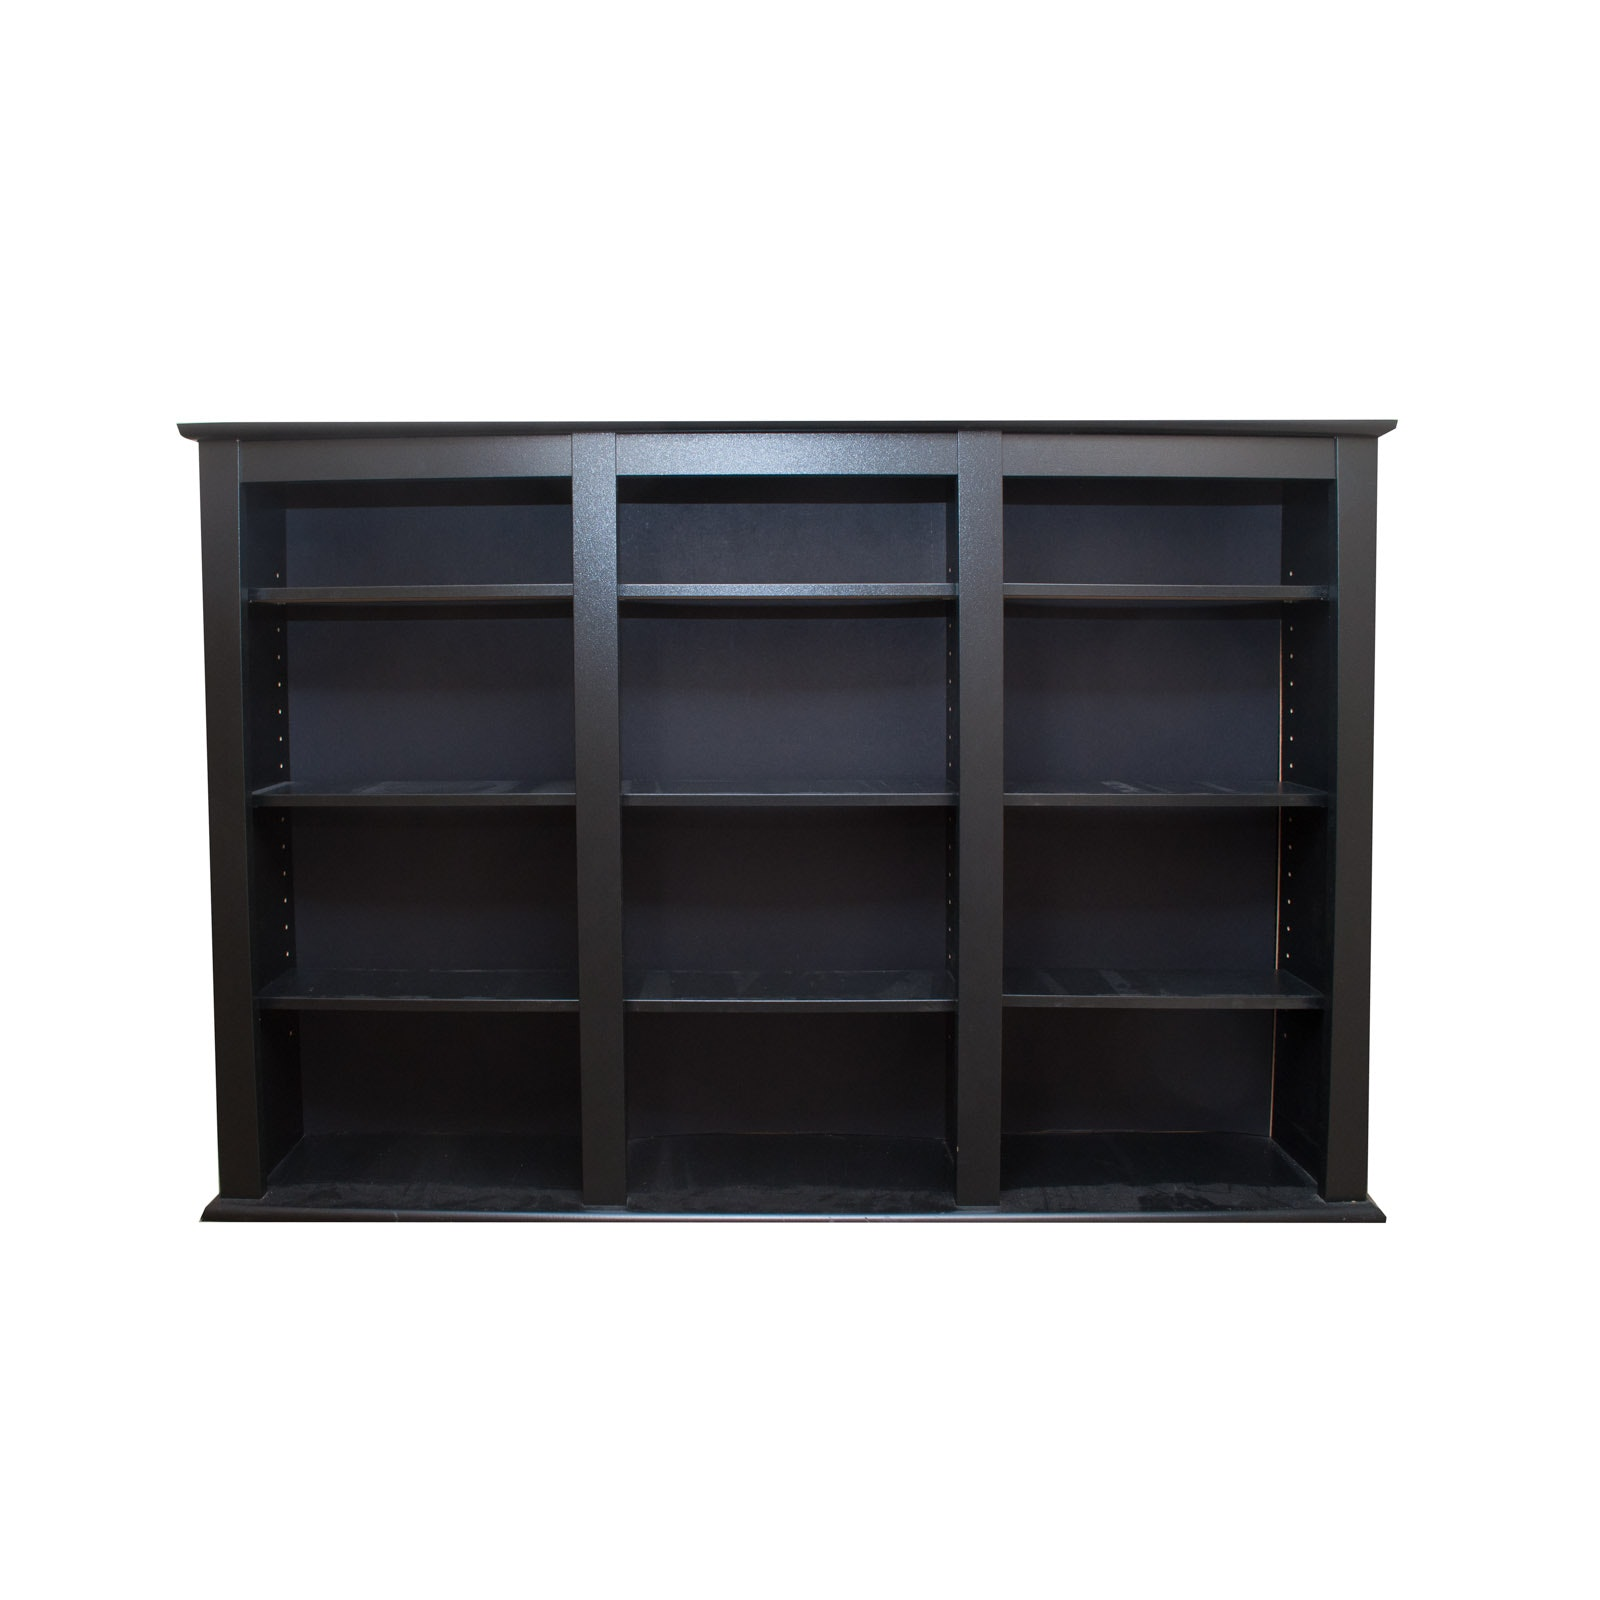 Painted Black Wooden Wall Shelving Unit